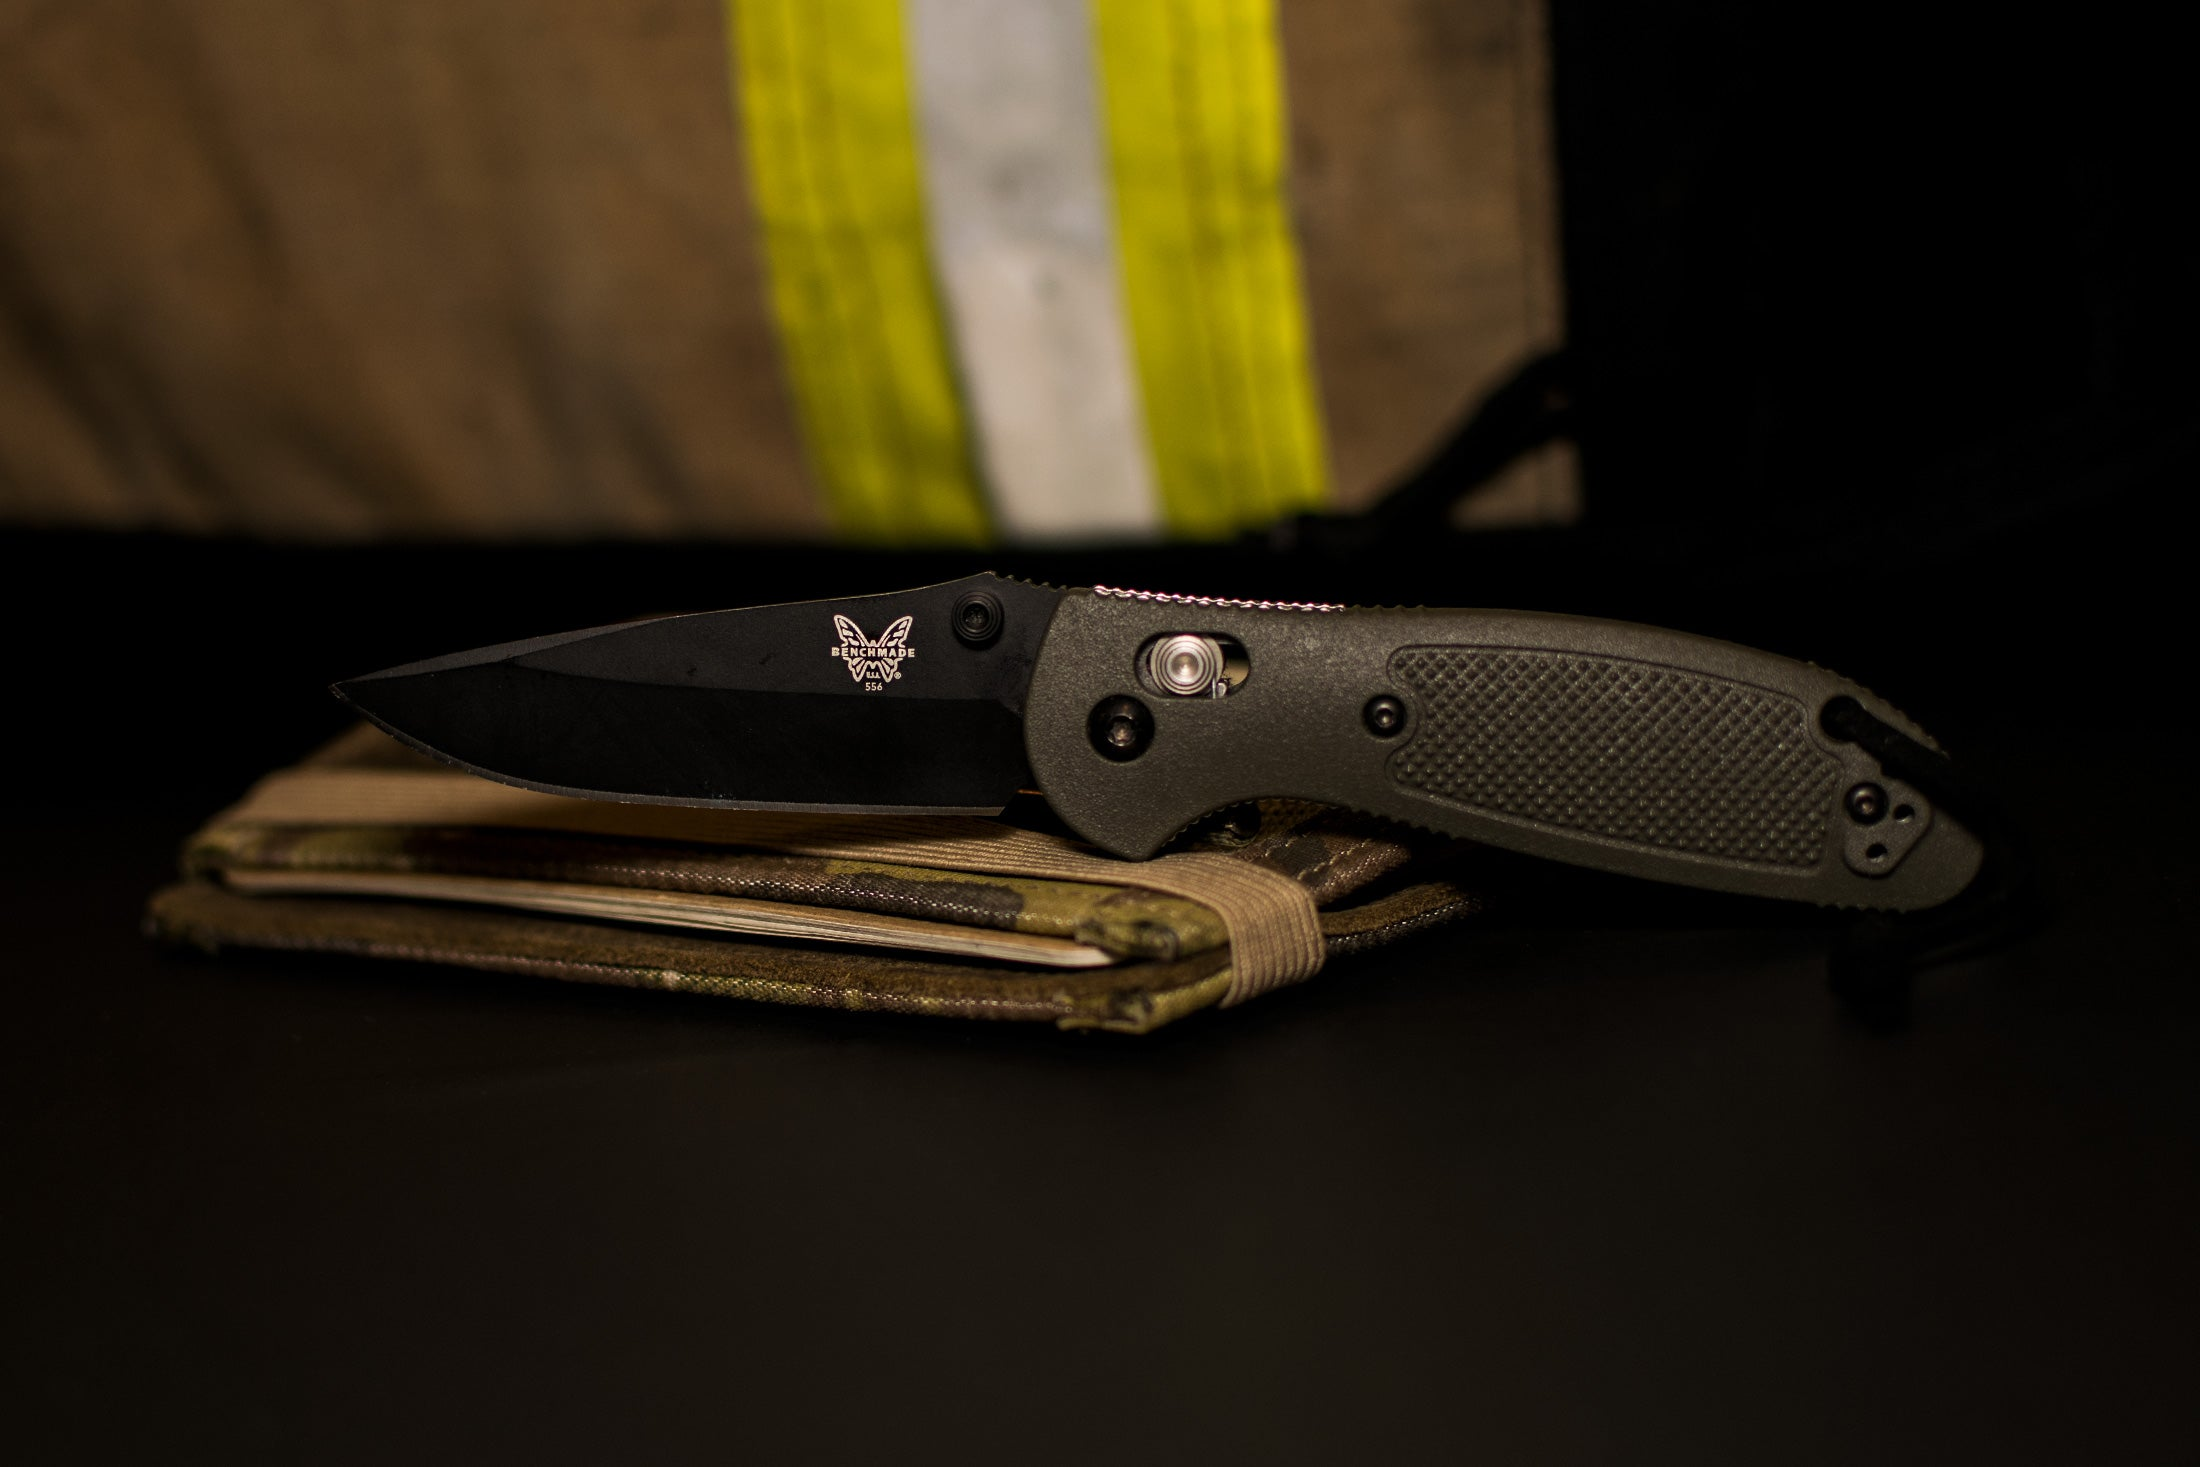 Best Benchmade Knife 2016